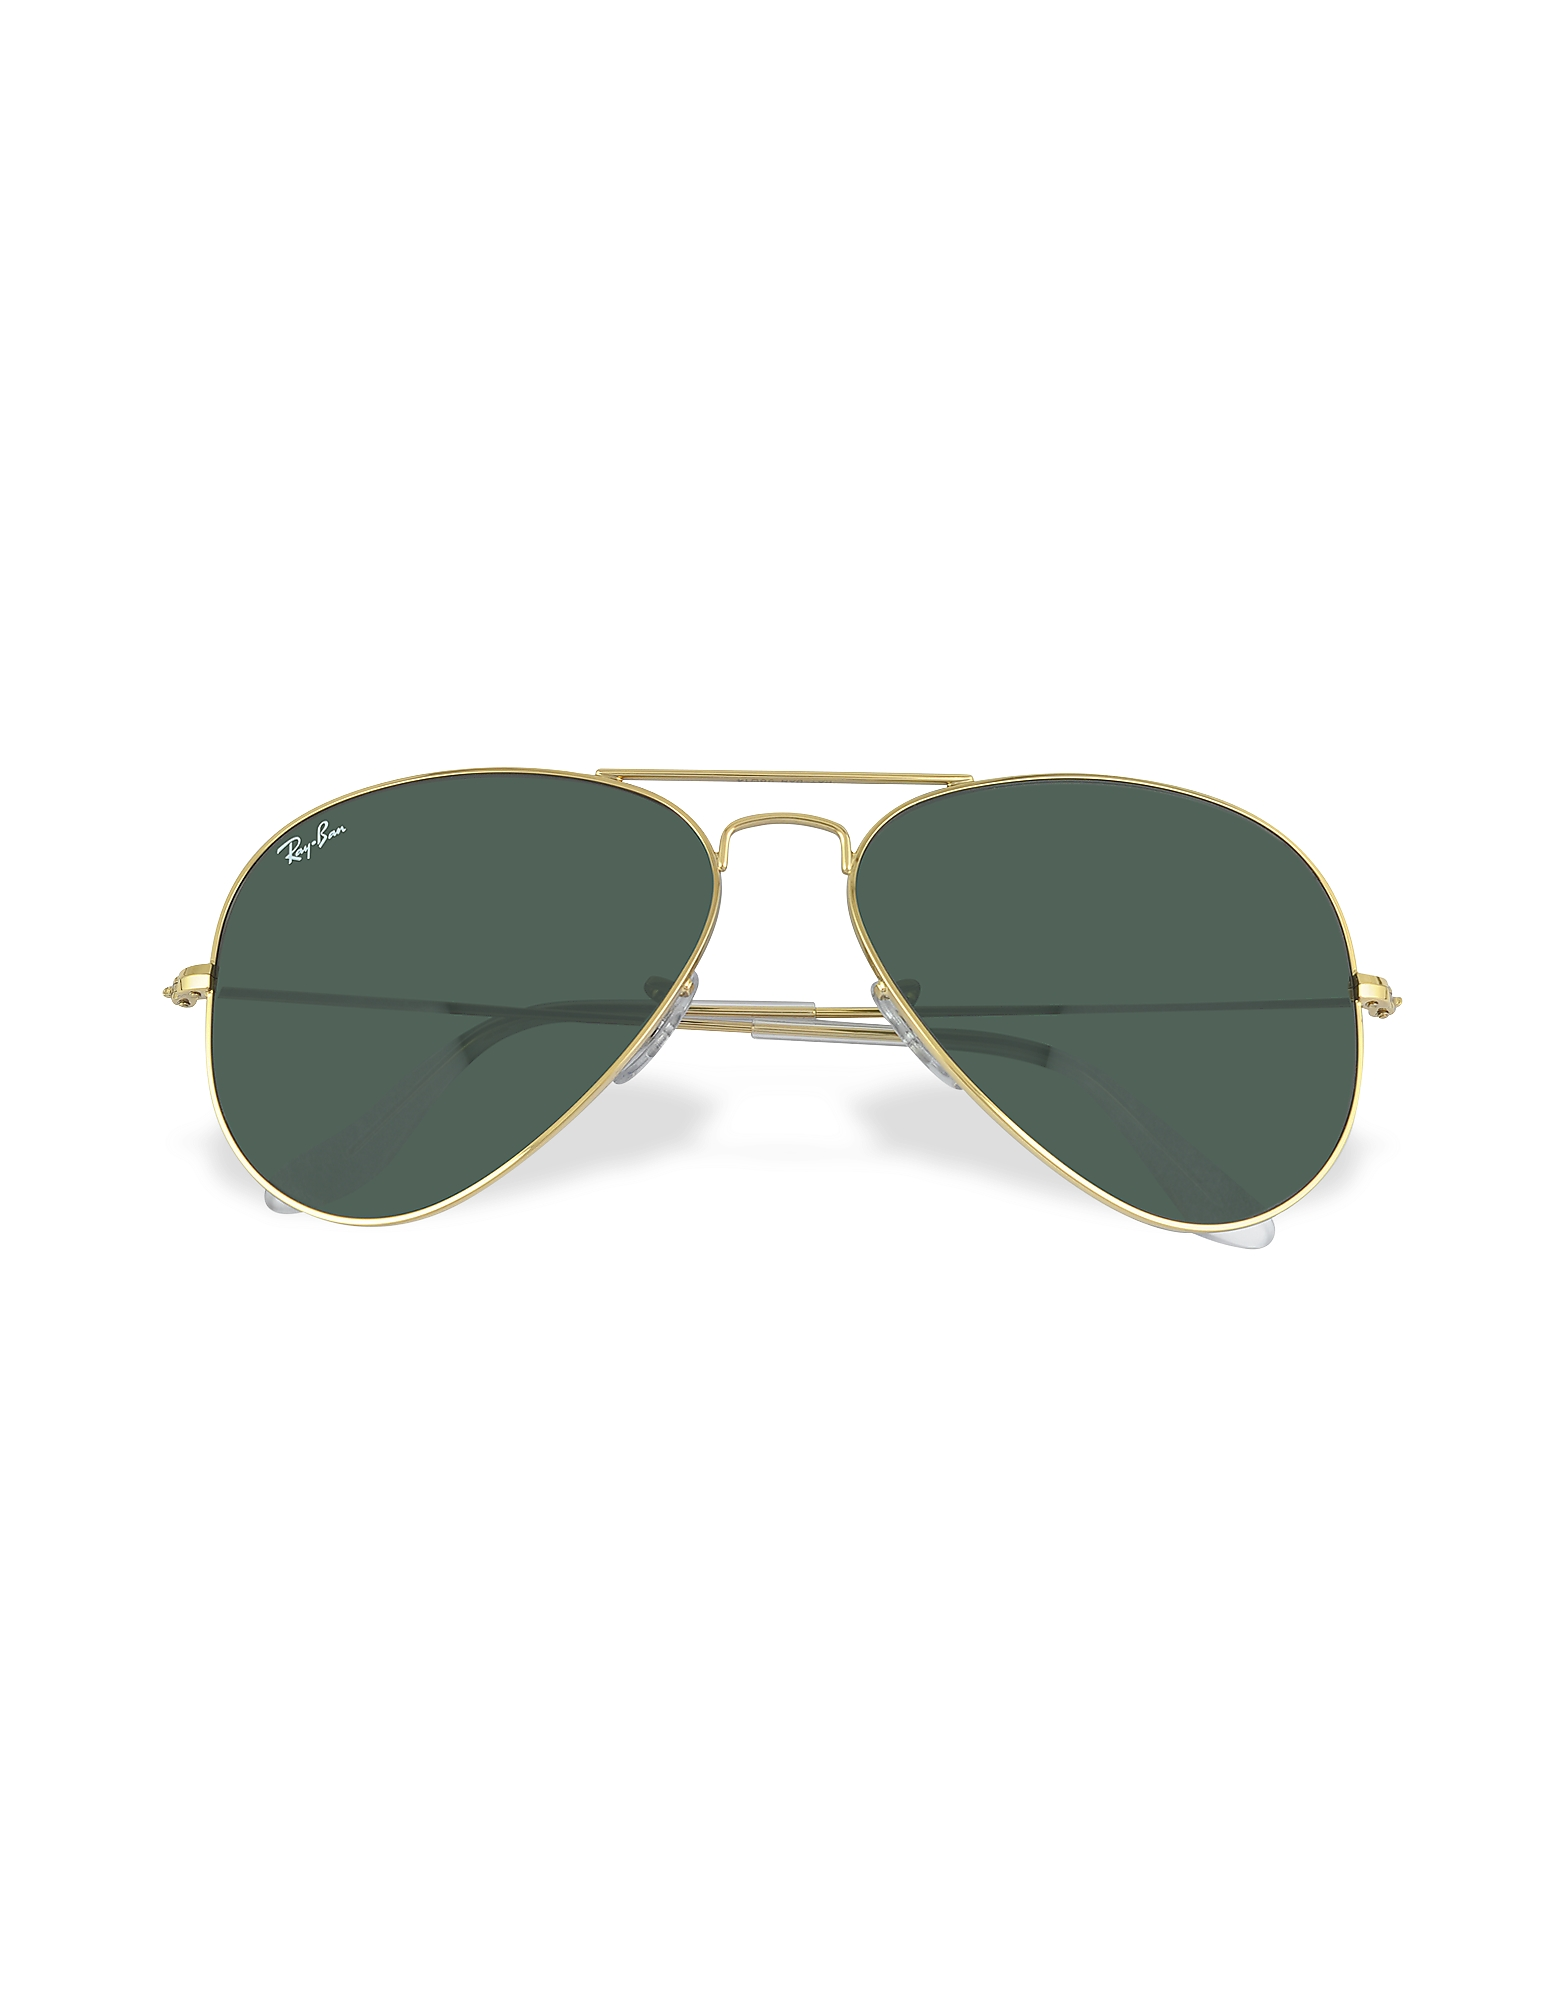 Ray Ban Designer Sunglasses, Aviator - Large Metal Sunglasses